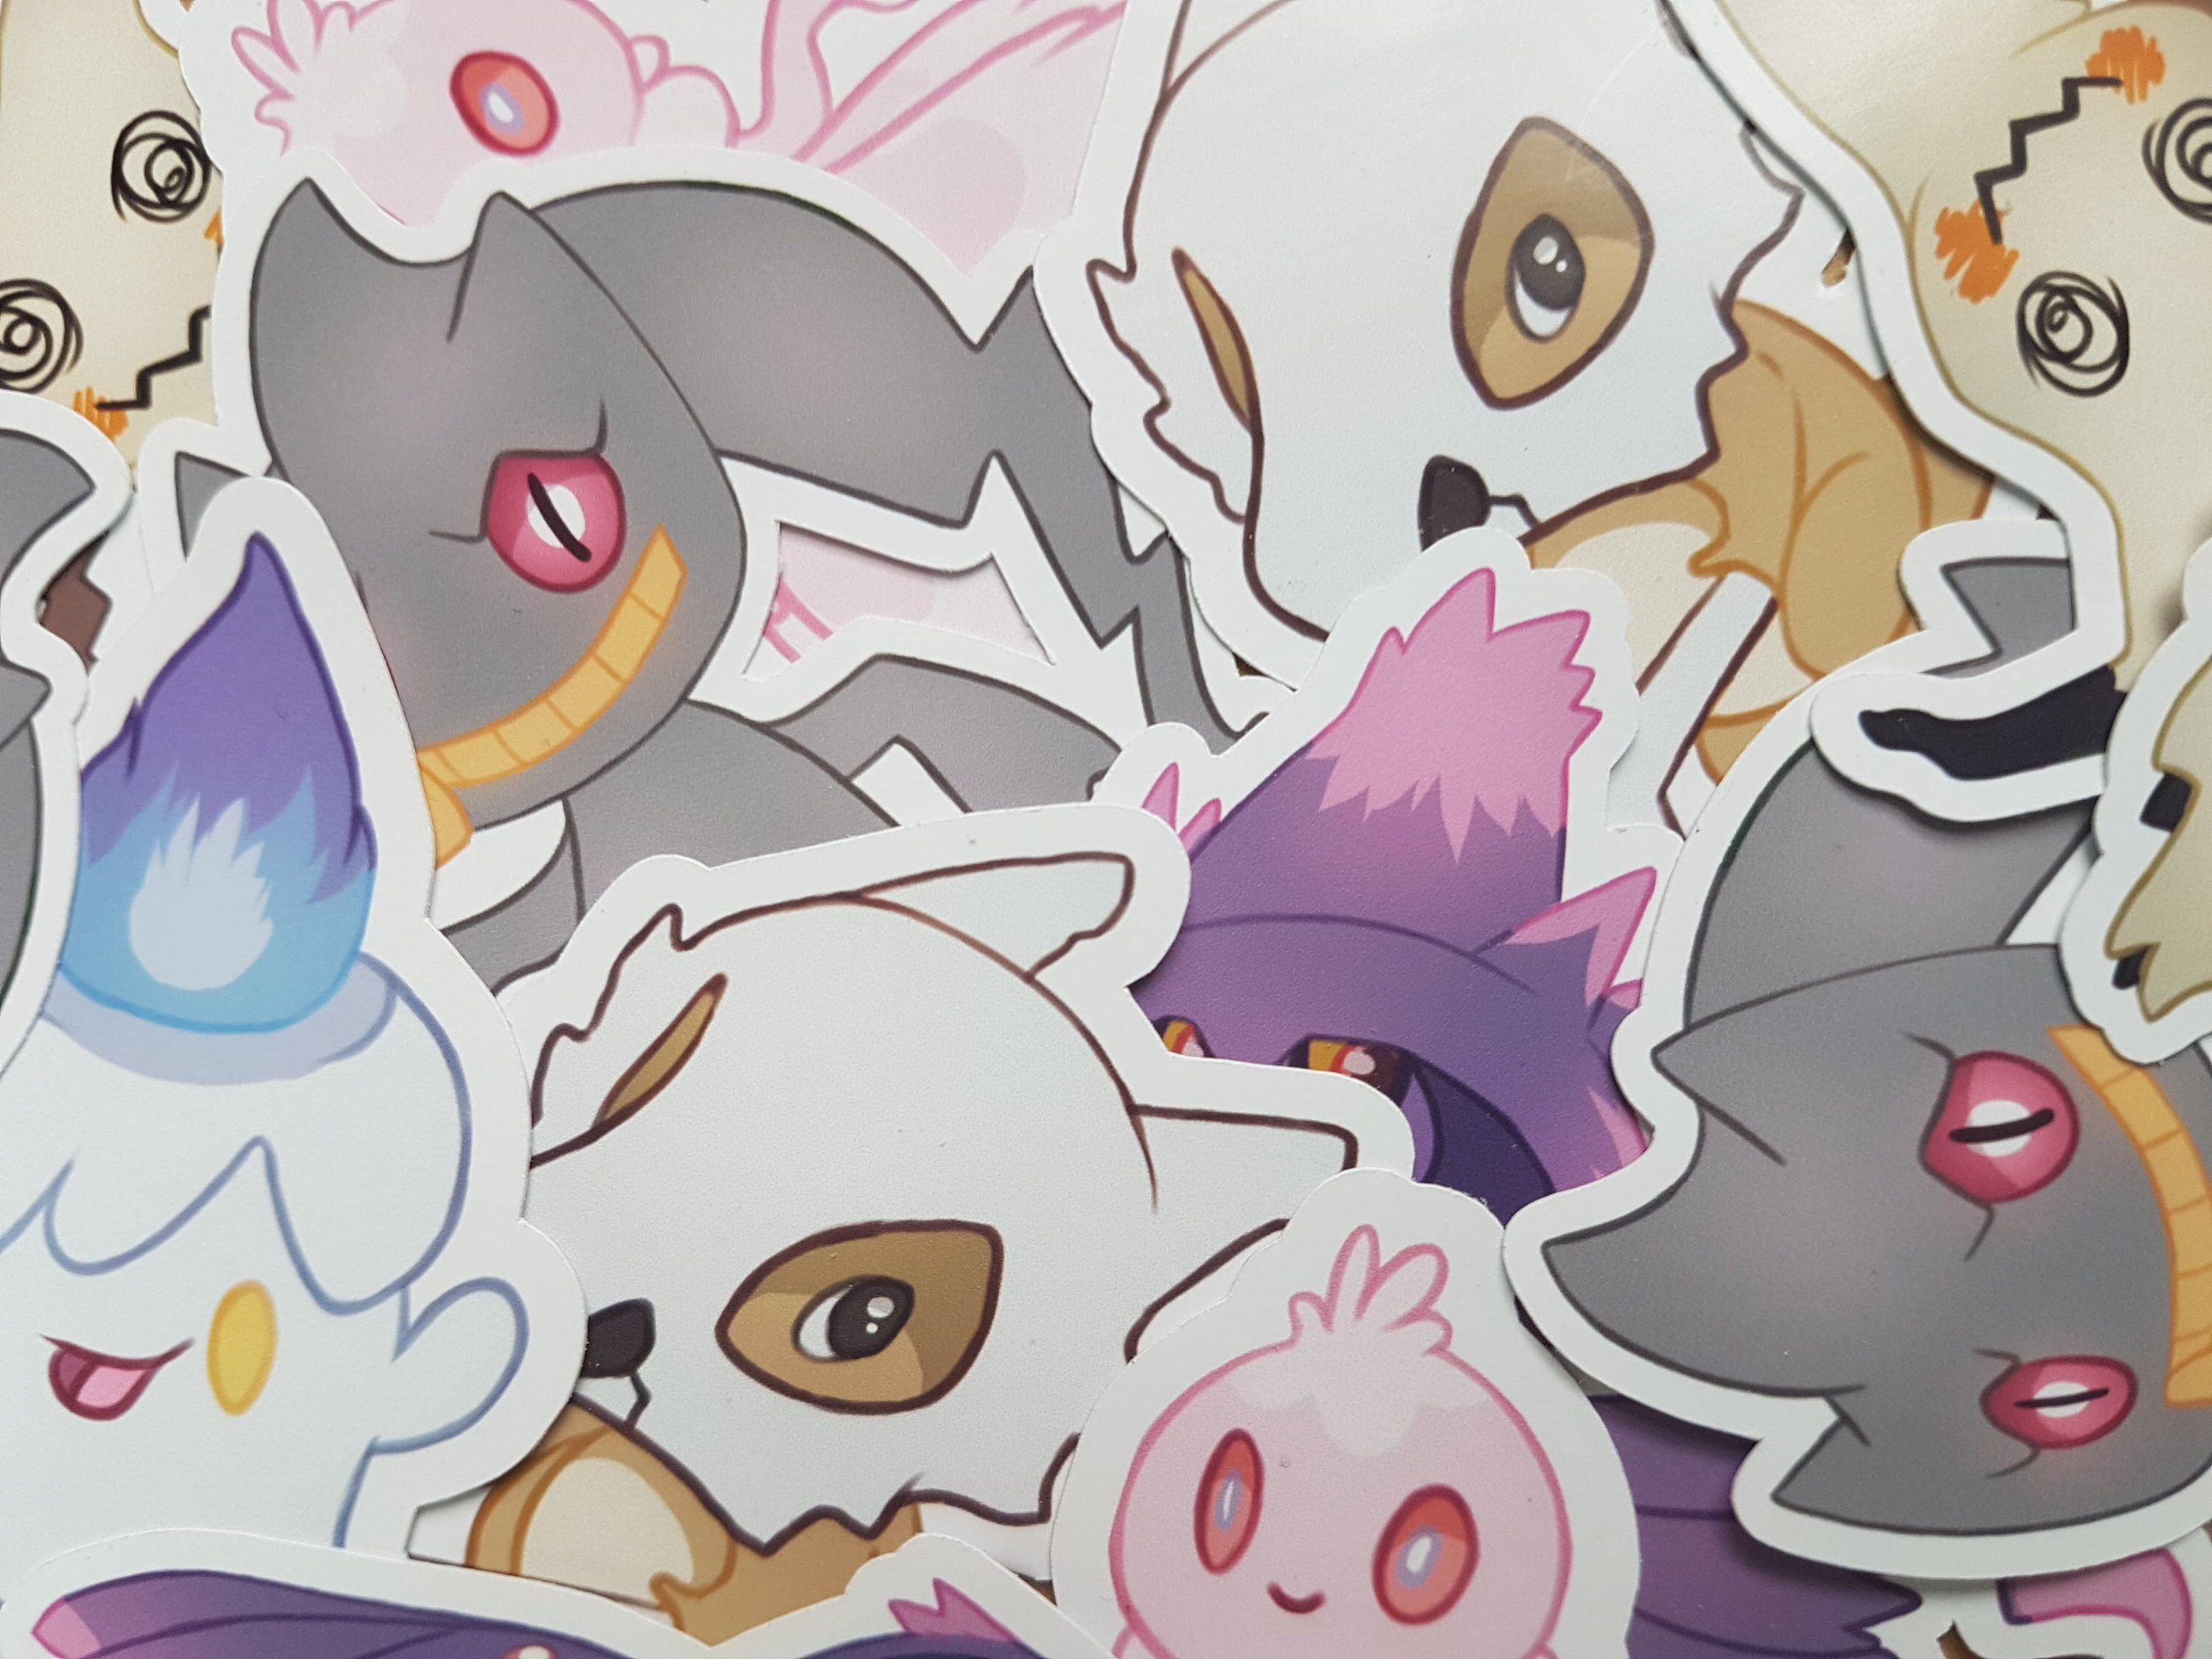 Pokemon / Ghost / Sticker / Cubone / Litwick / Mismagius / Mimikyu /  Halloween/ Geek / Video Game / Laptop / Planner / Journal / Kawaii |  Mimikyu, Ghost pokemon, Pokemon